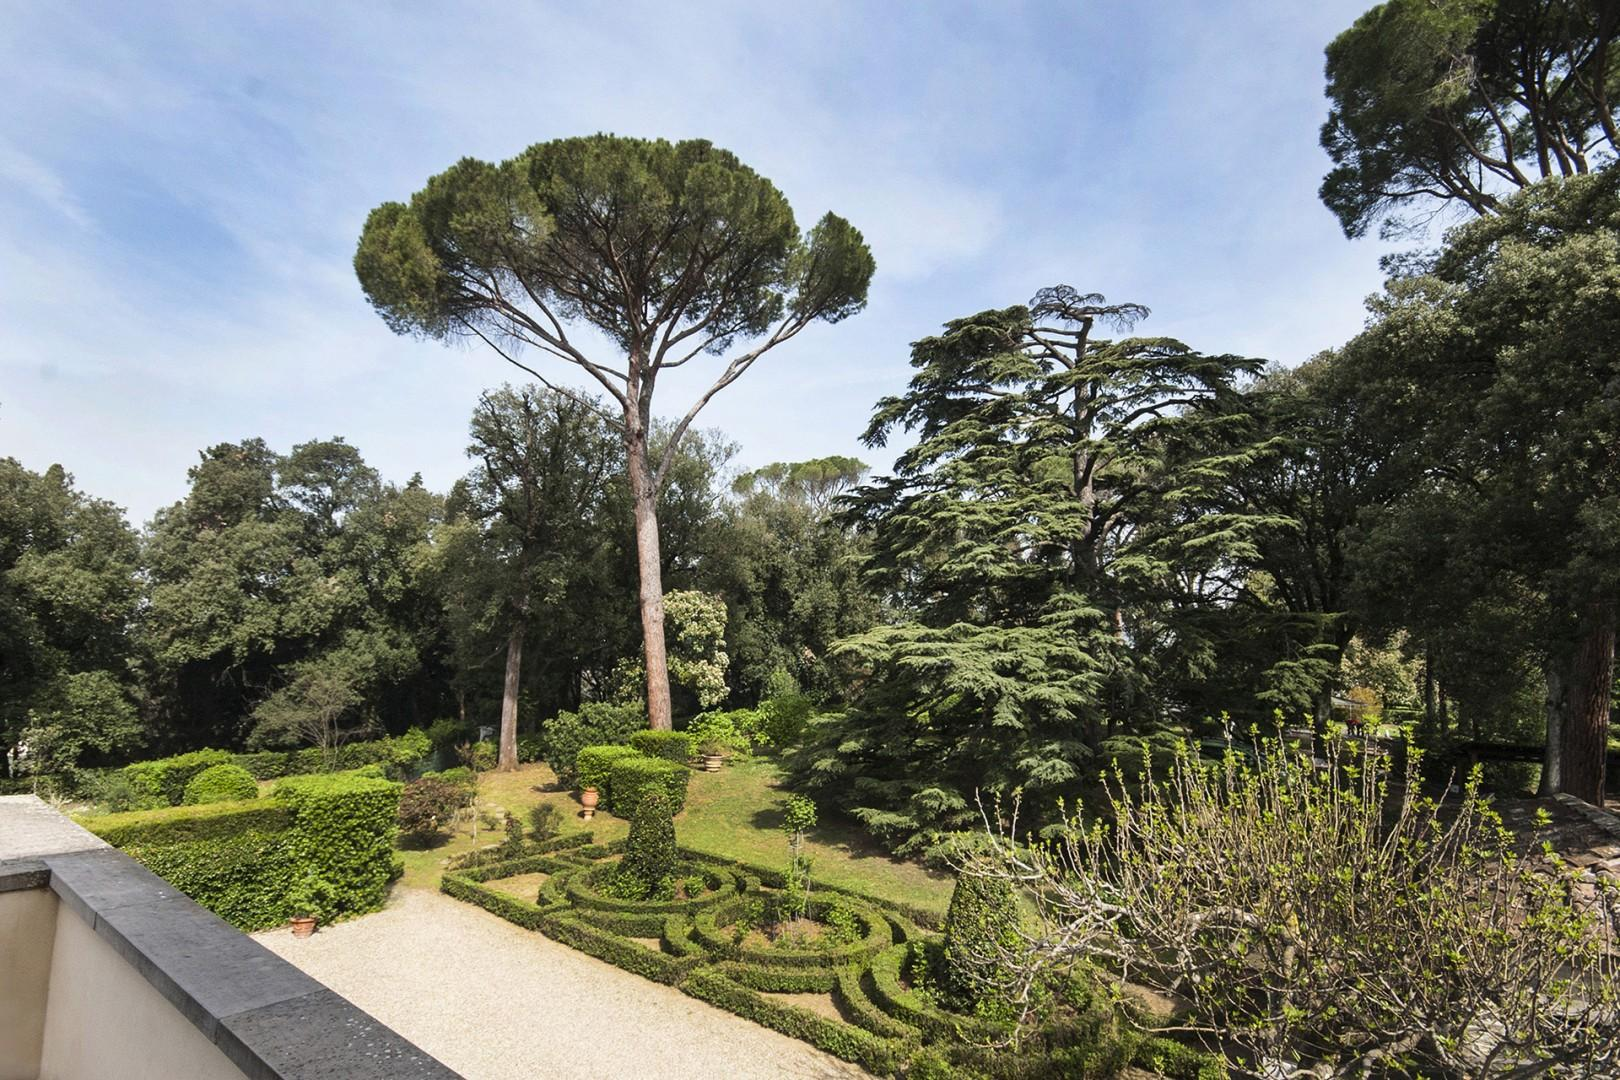 Well-manicured garden and umbrella pines so characteristic of Italy.